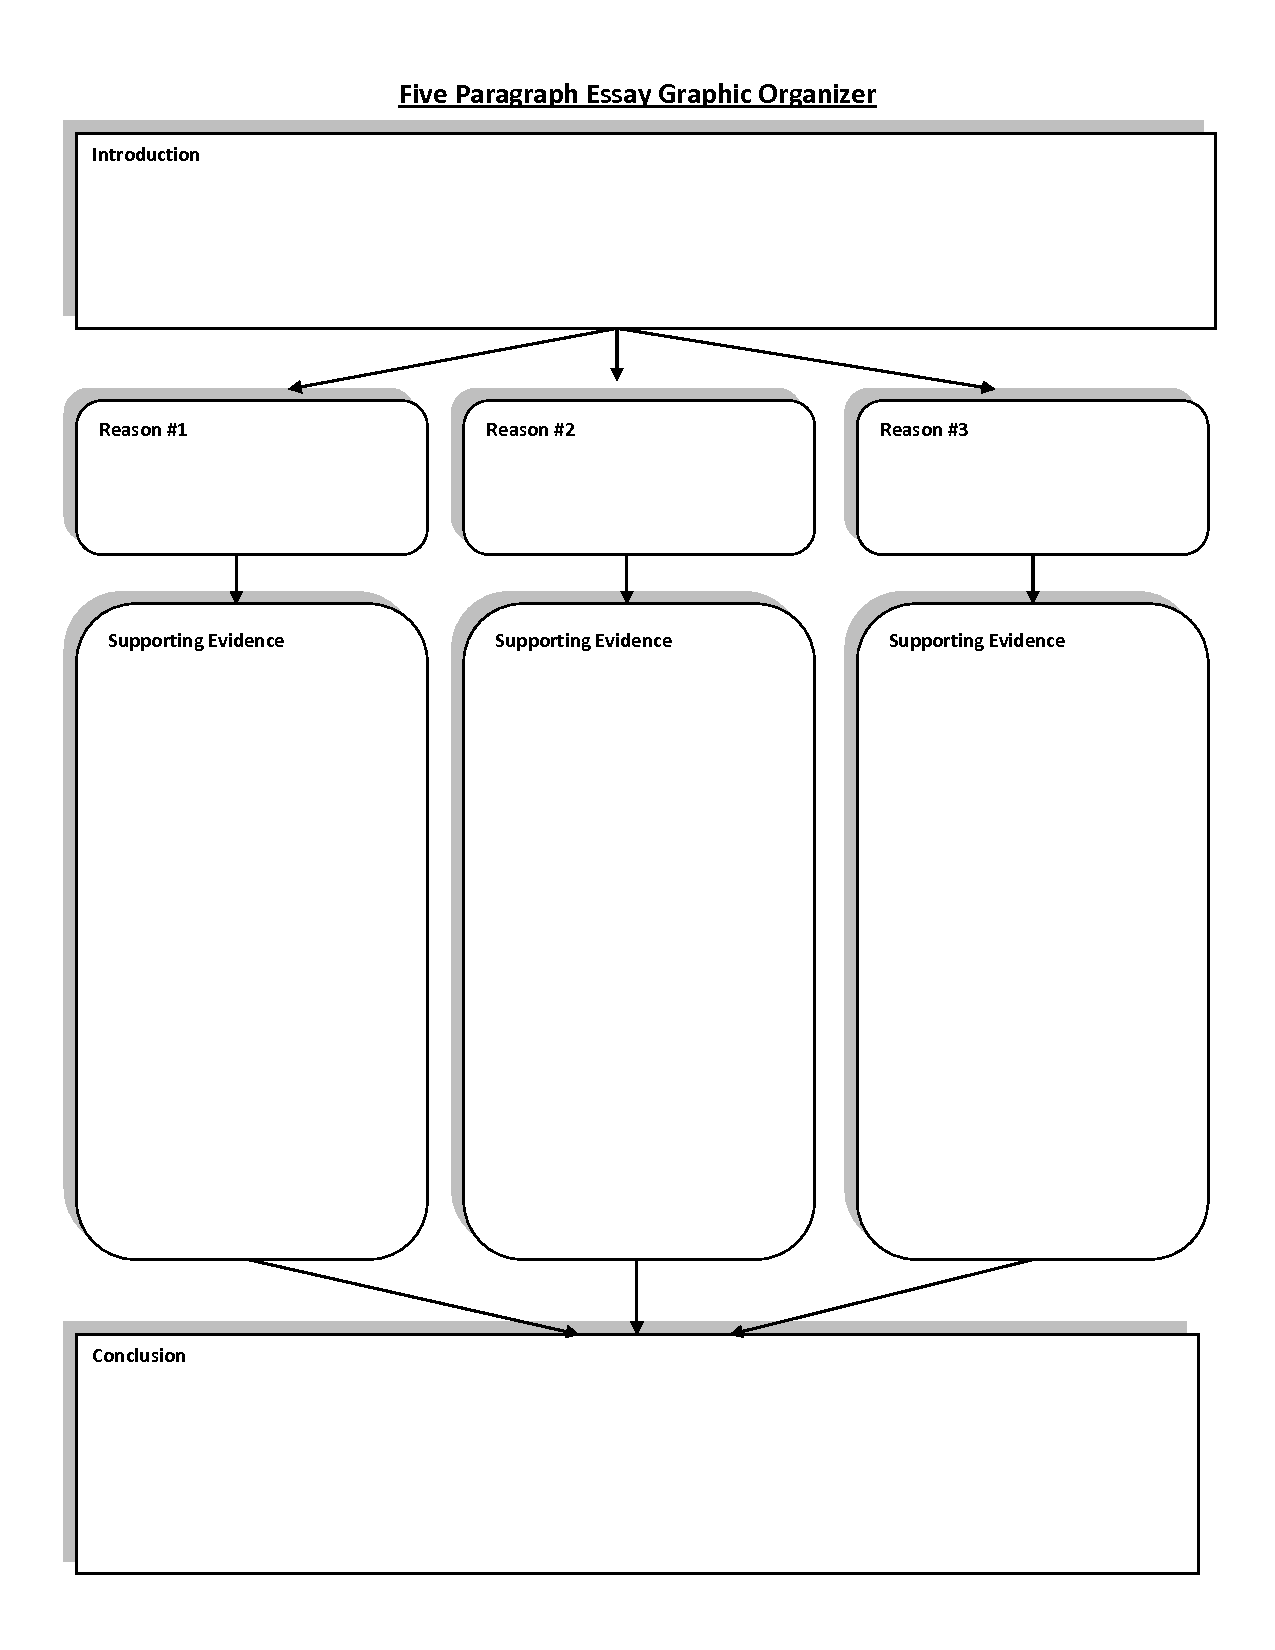 Graphic Organizers For Writing 5 Paragraph Essays Ideas